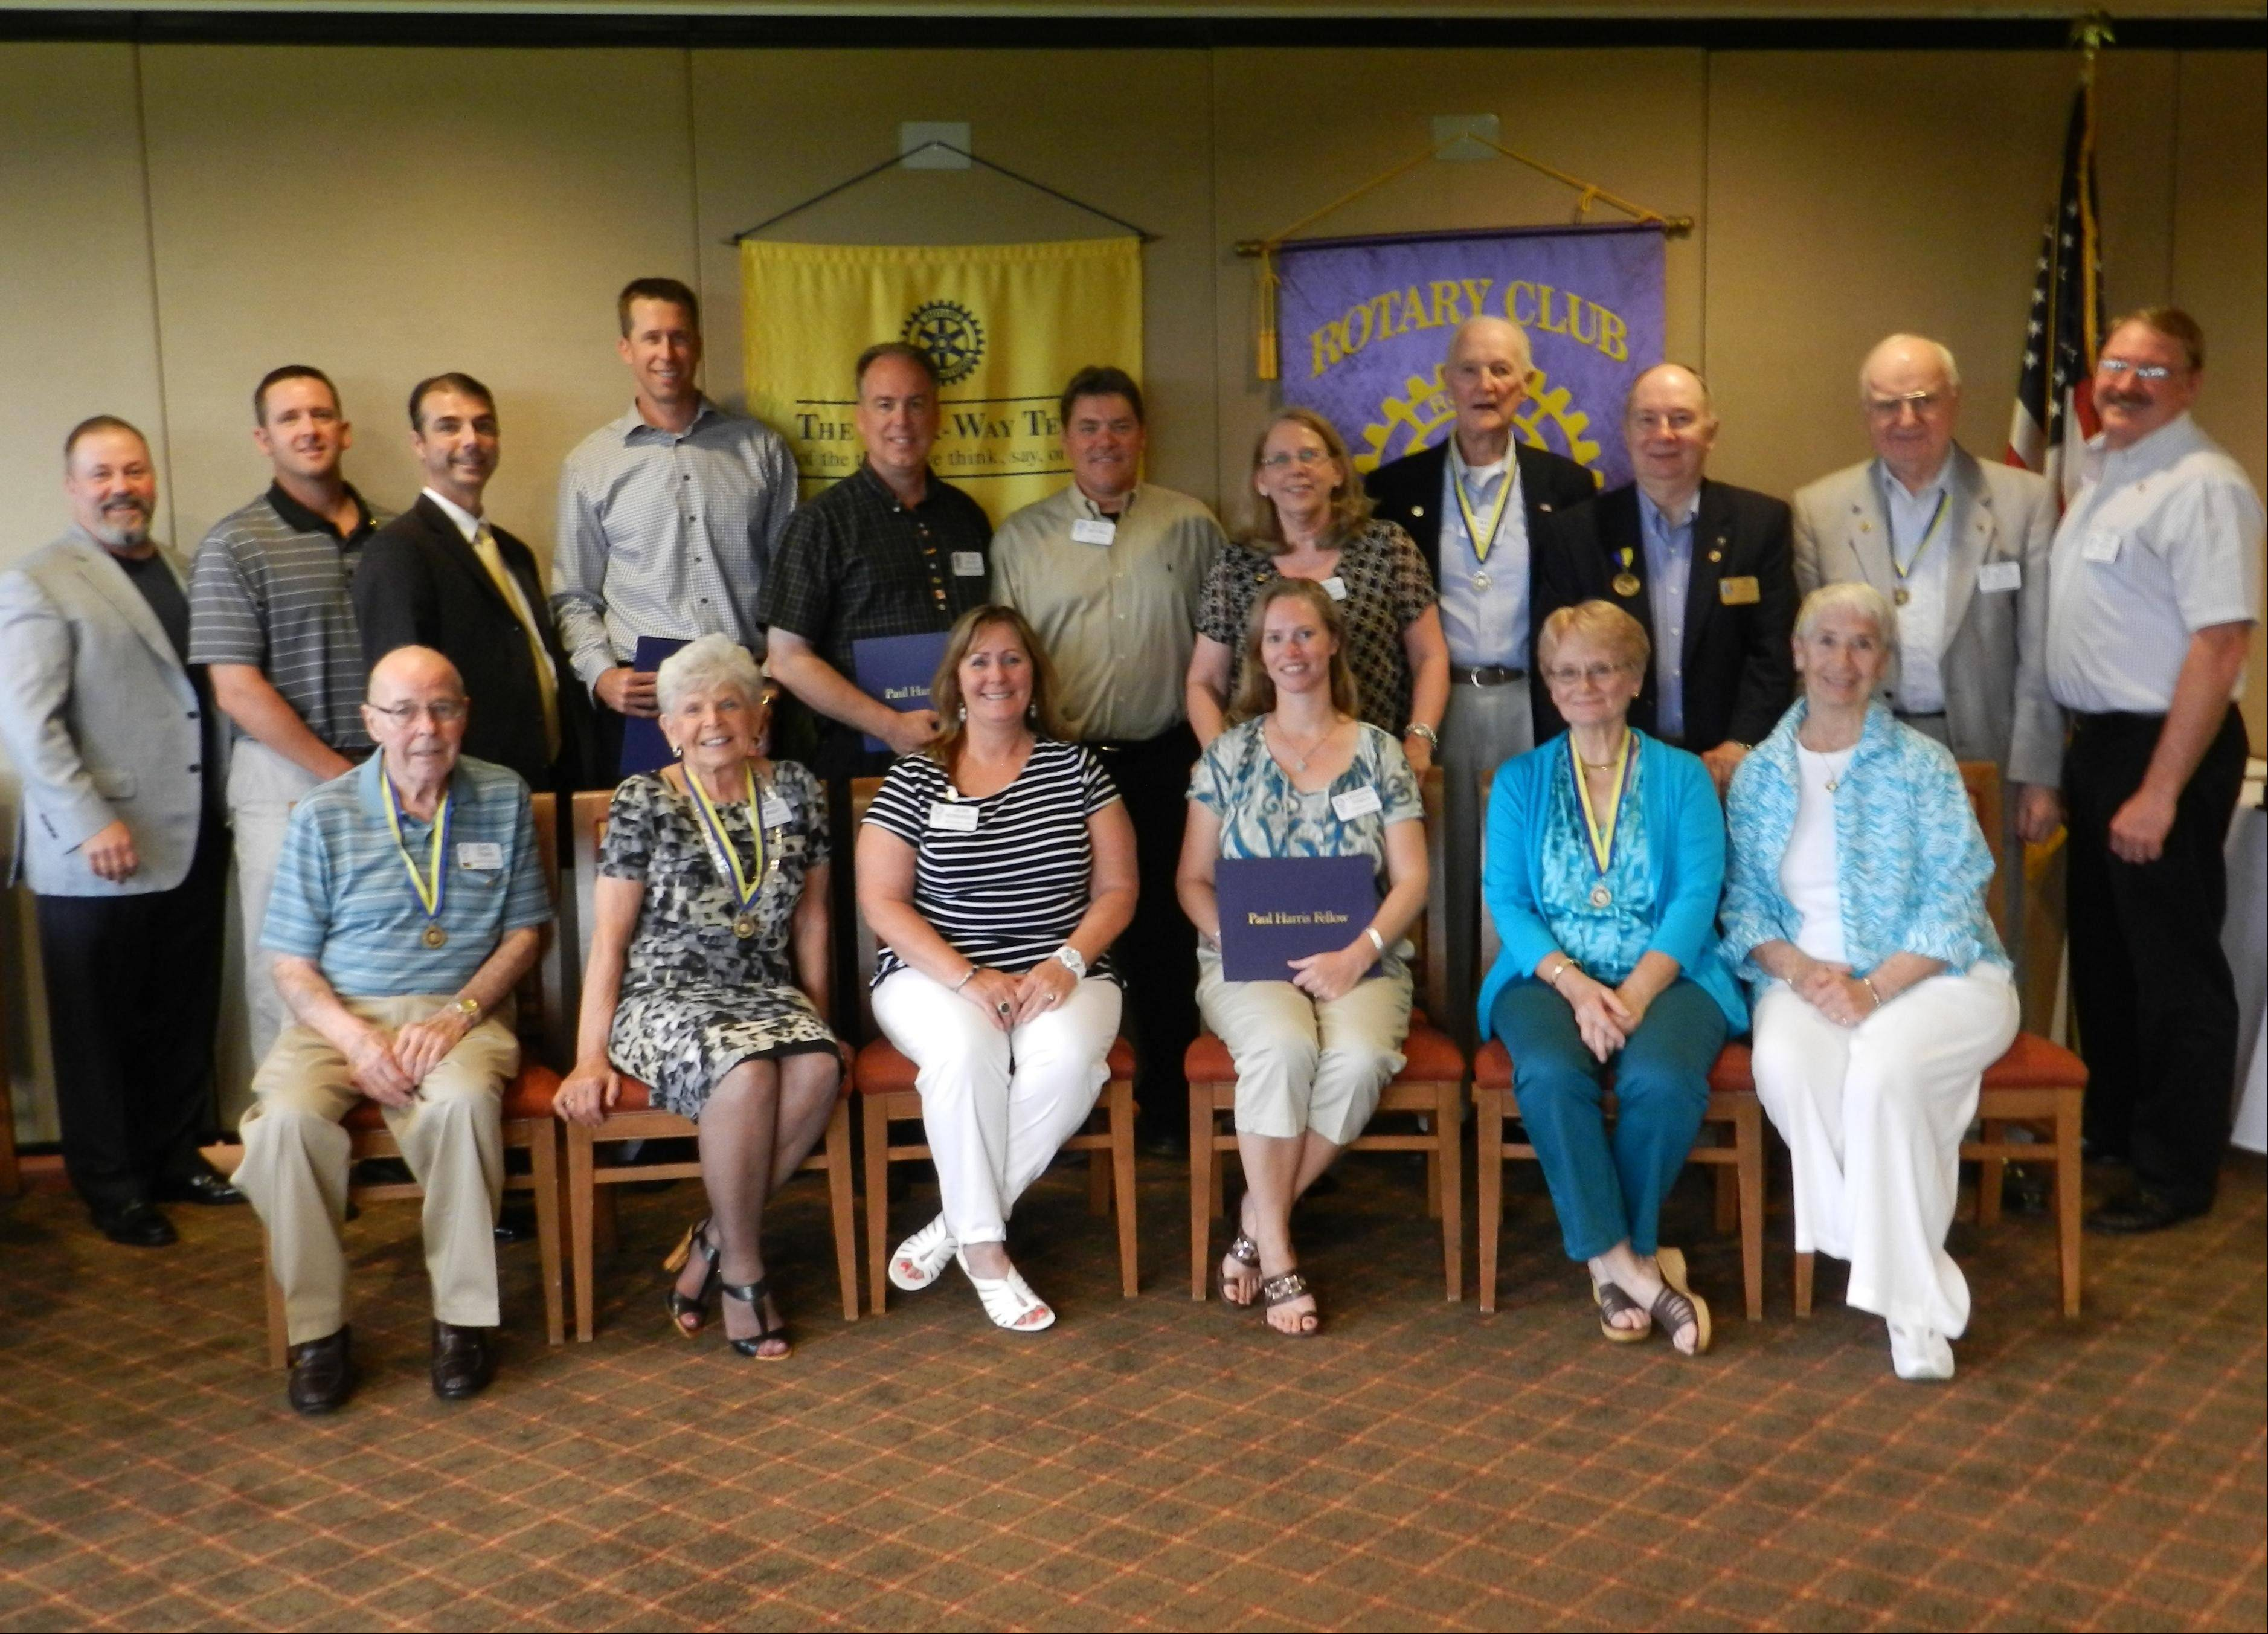 The Huntley Rotary Club recently awarded five Paul Harris Fellowships. Members include: first row, from left, Earl Ferris, Muriel Wright, Jean Hernandez, Leigh Ann Porsch, Kathy Uszler and Maxine Higgins; and back row, Jim Vaccaro, Chad Alexander, Bill Jorgensen, Chad Binger, Thom Palmer, Scott Mitchell, Nancy Topalovich, Warren Higgins, Jim Uszler, Rudi Welvers and Jim Drendel.